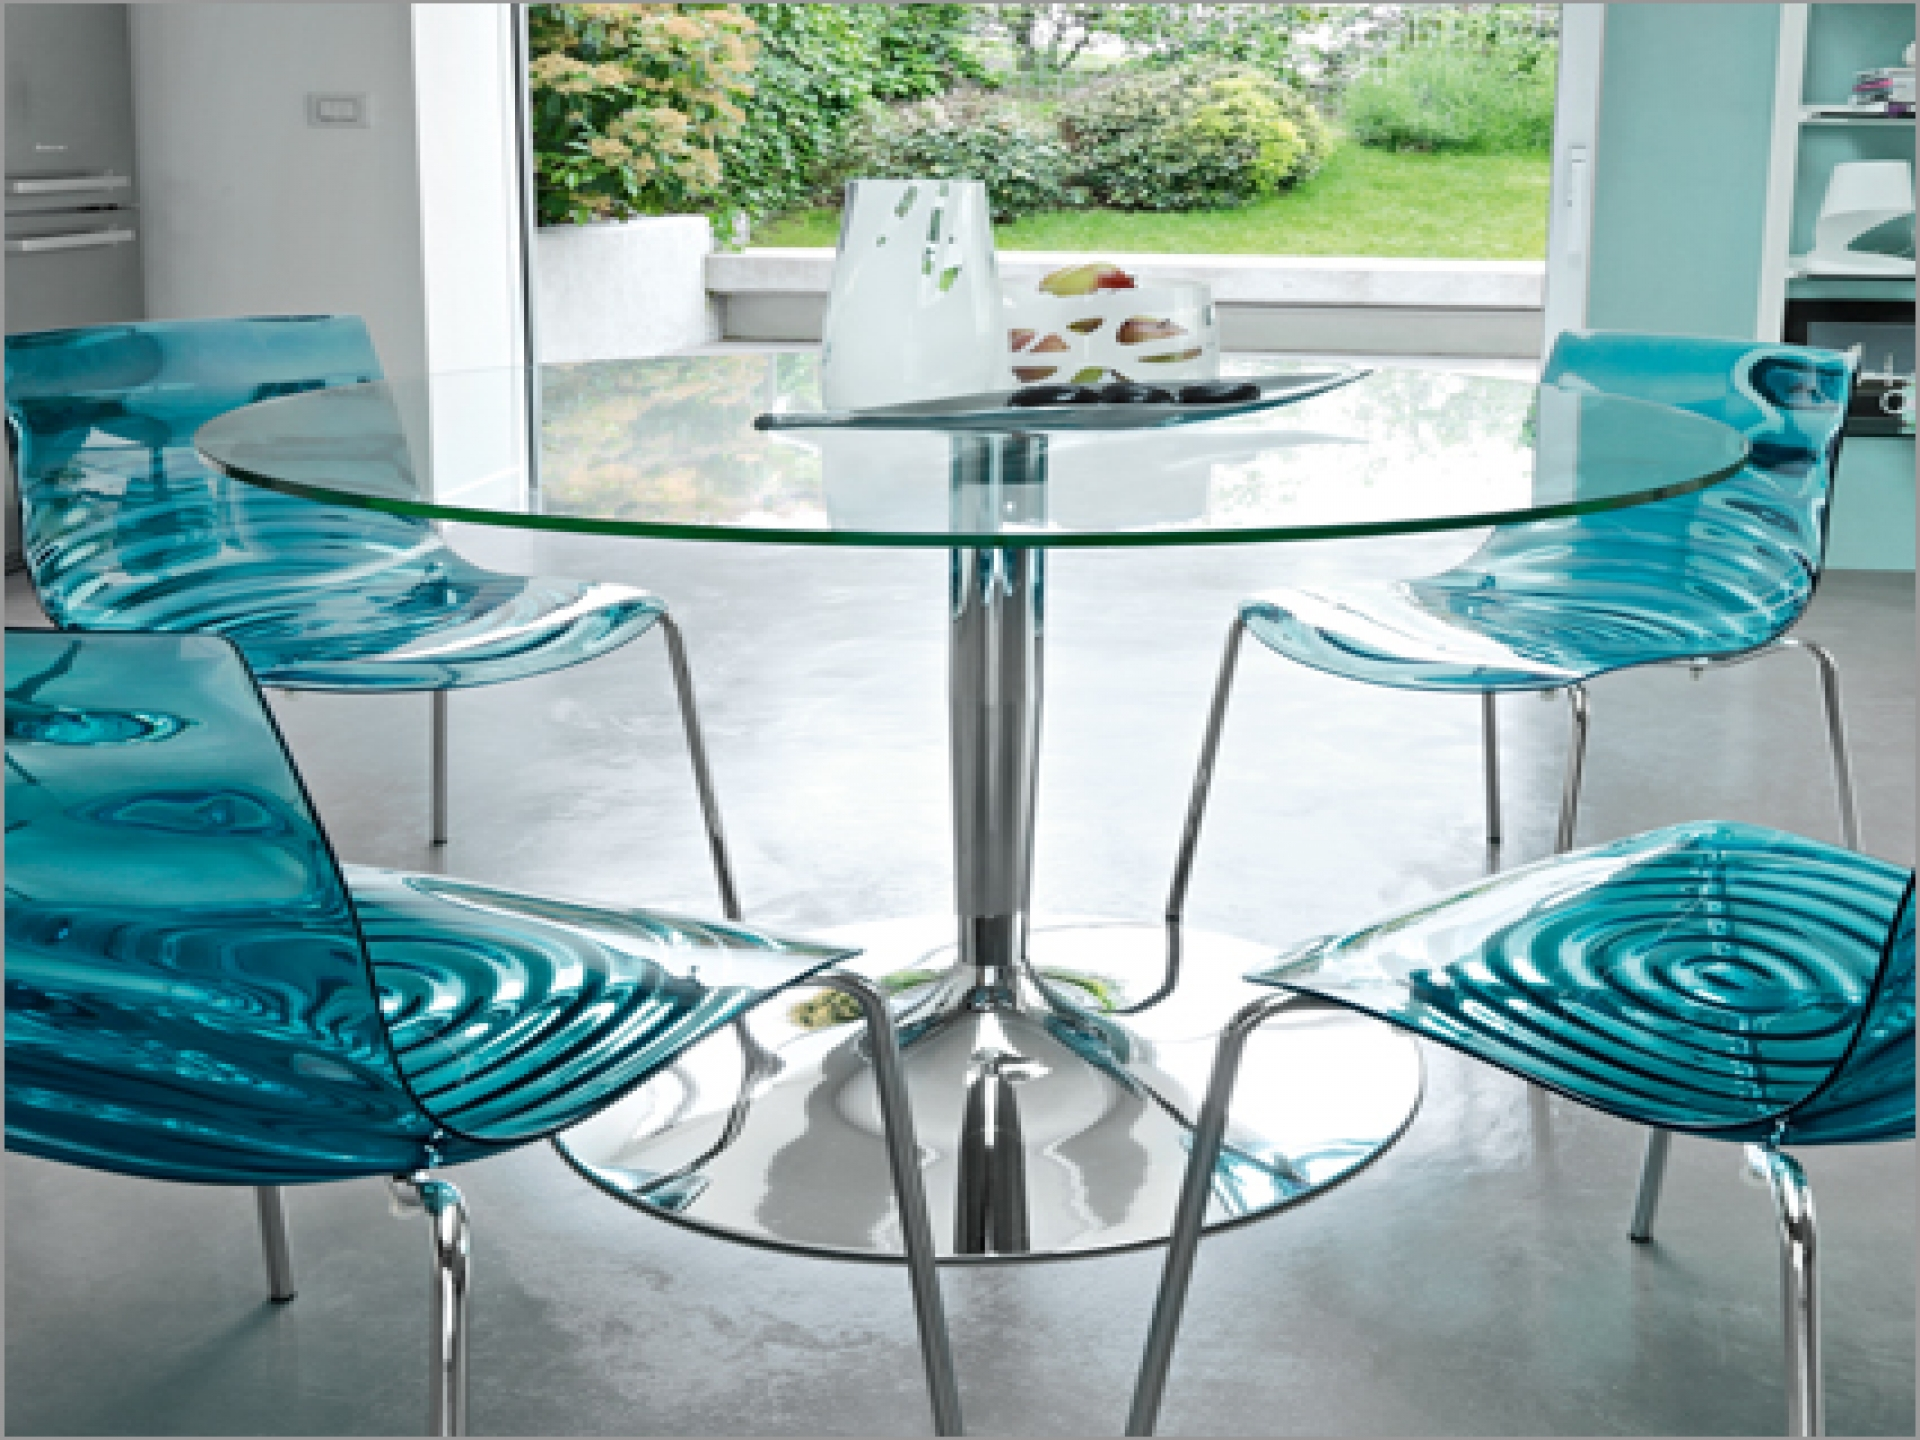 plastic kitchen chairs teal kitchen chairs Plastic kitchen chairs Photo 6